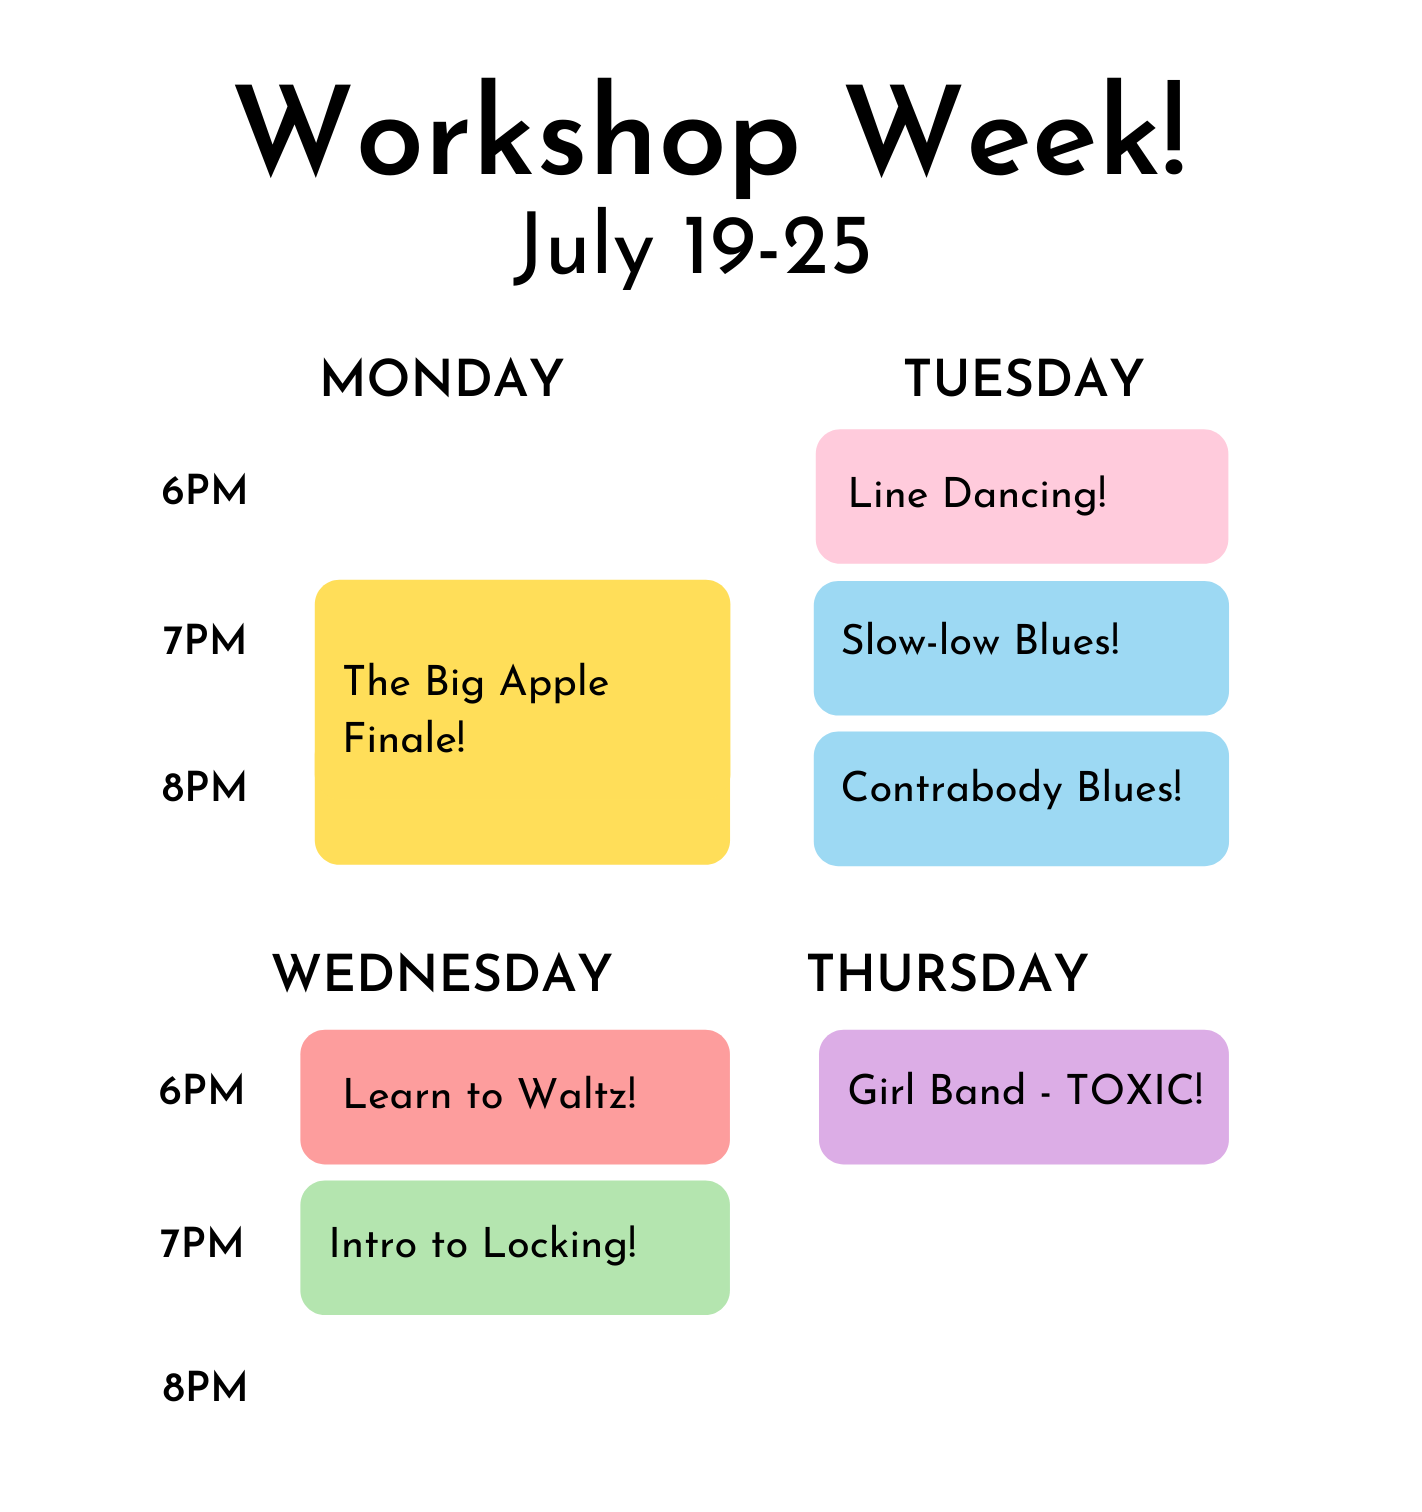 Colour coded visual timetable. All details of class dates, times and descriptions in link above